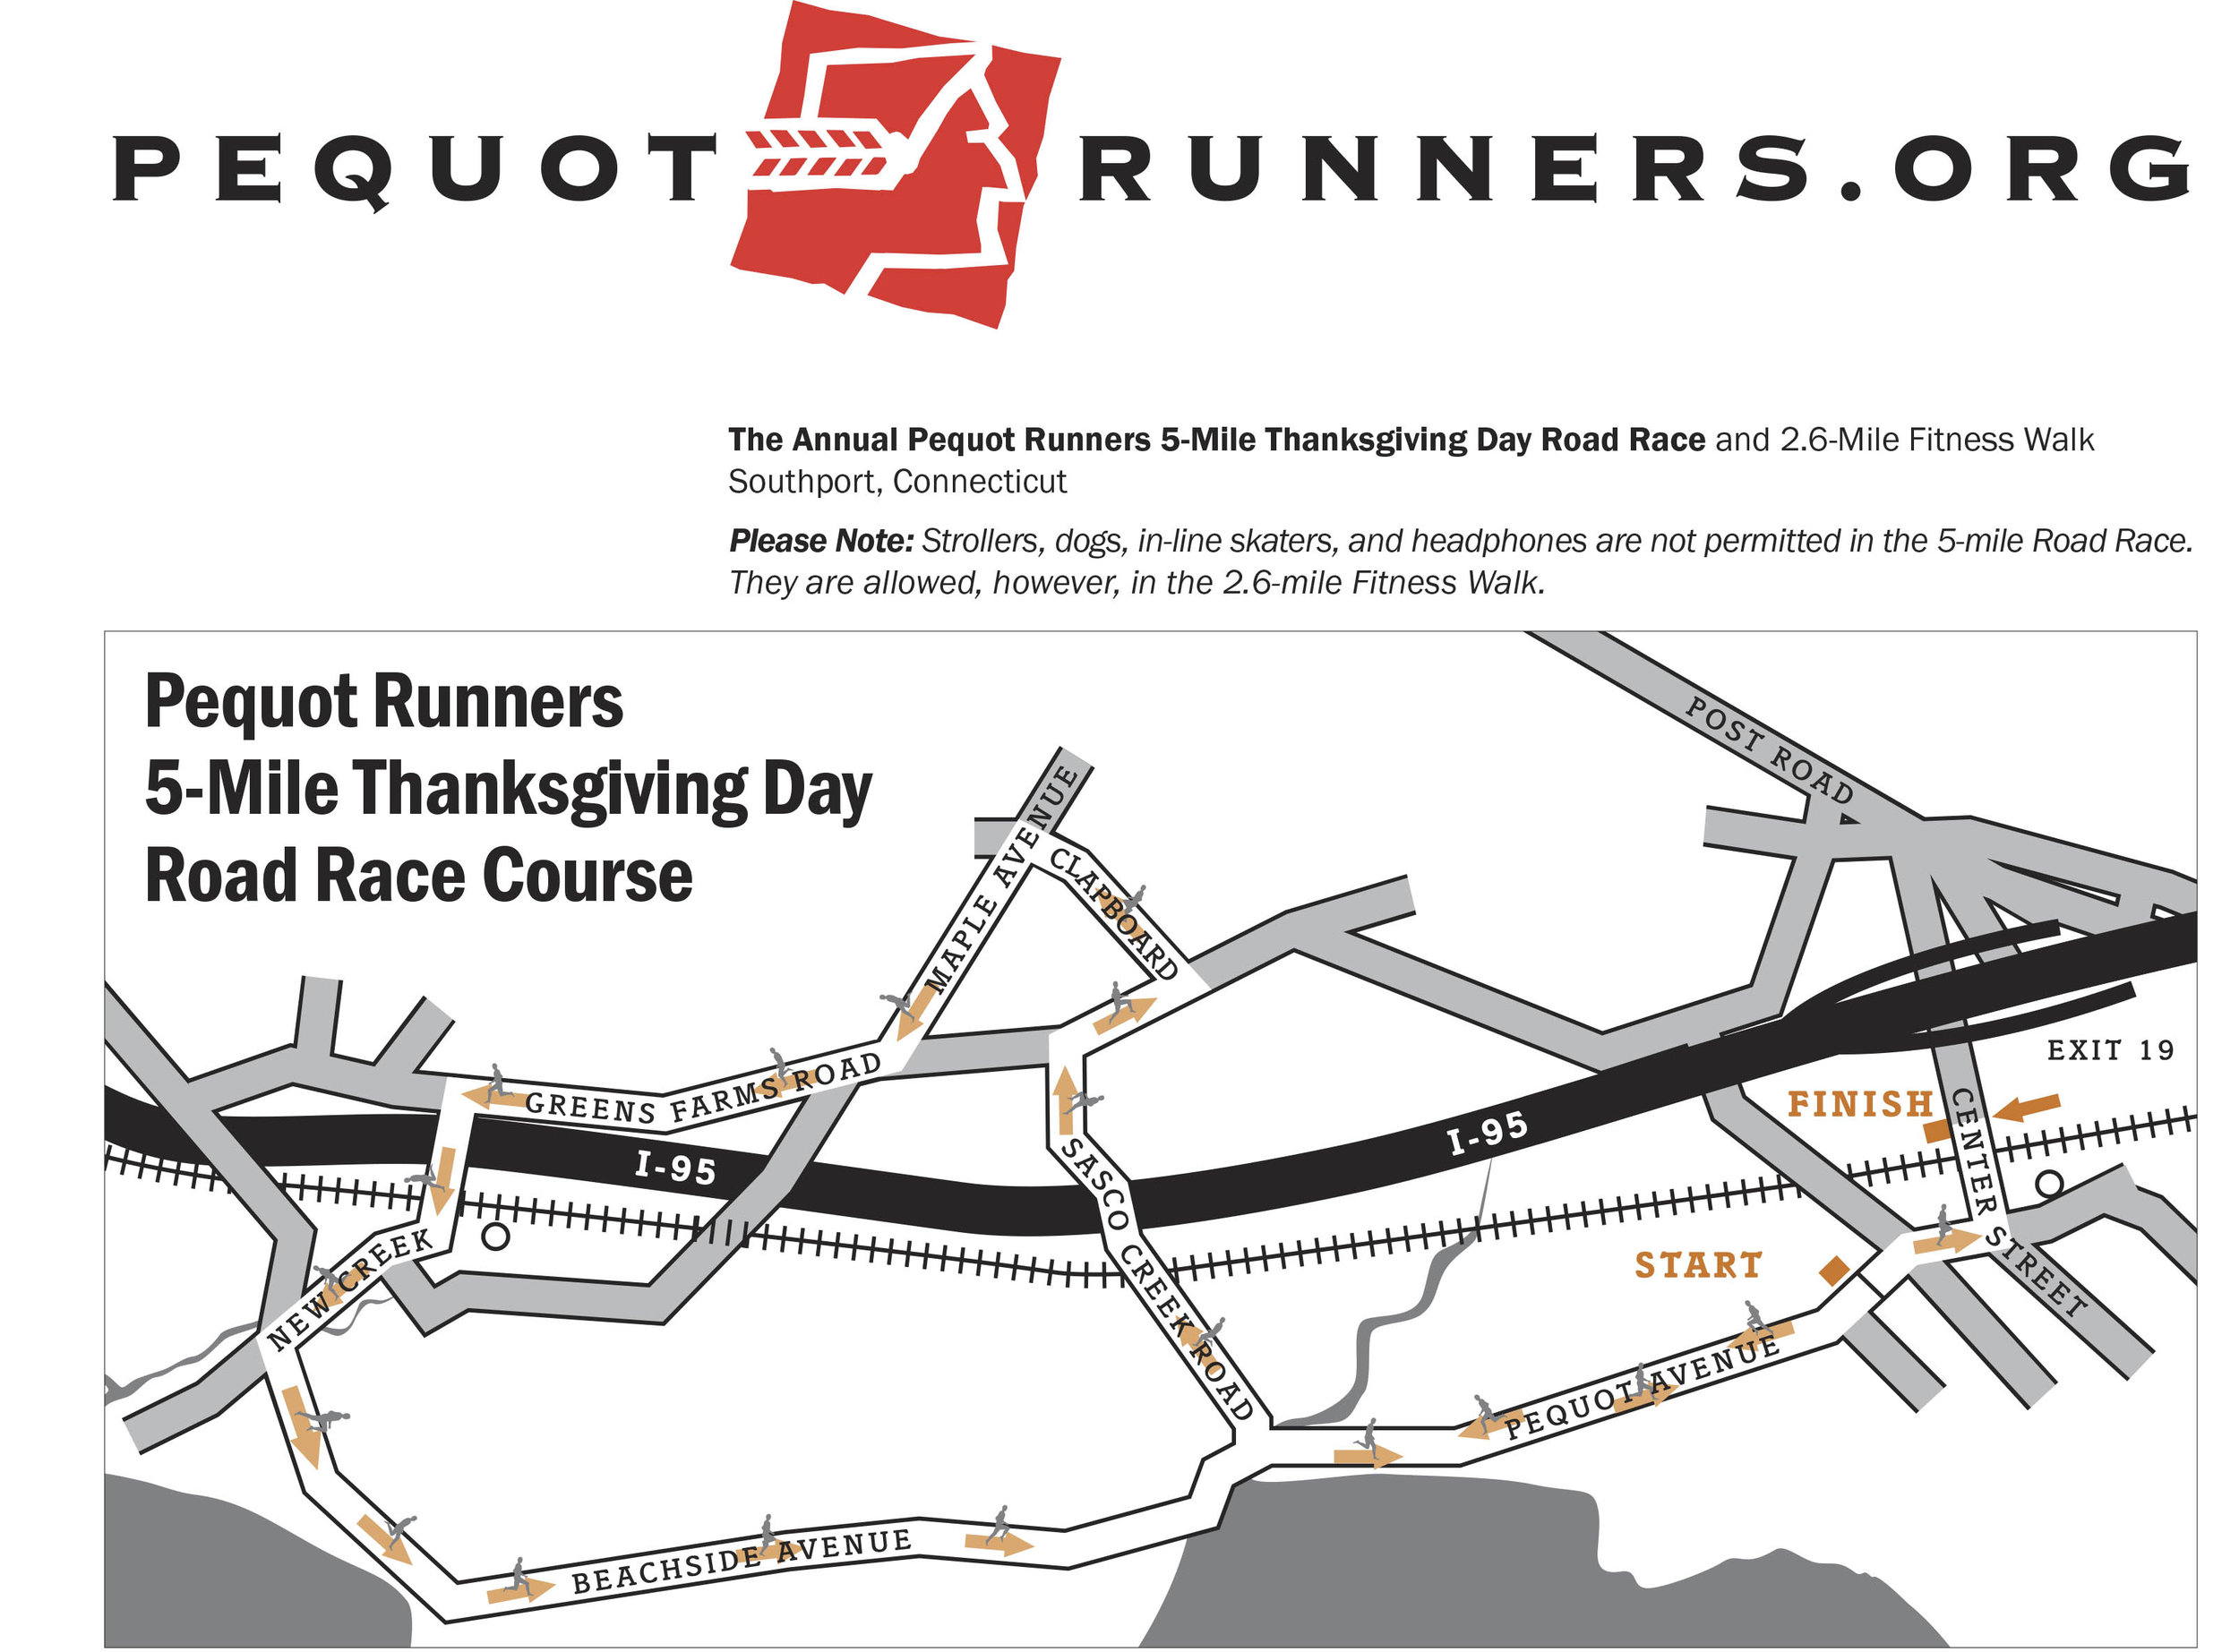 pequotrunners-5-mile-racecourse-map2015 2.jpg